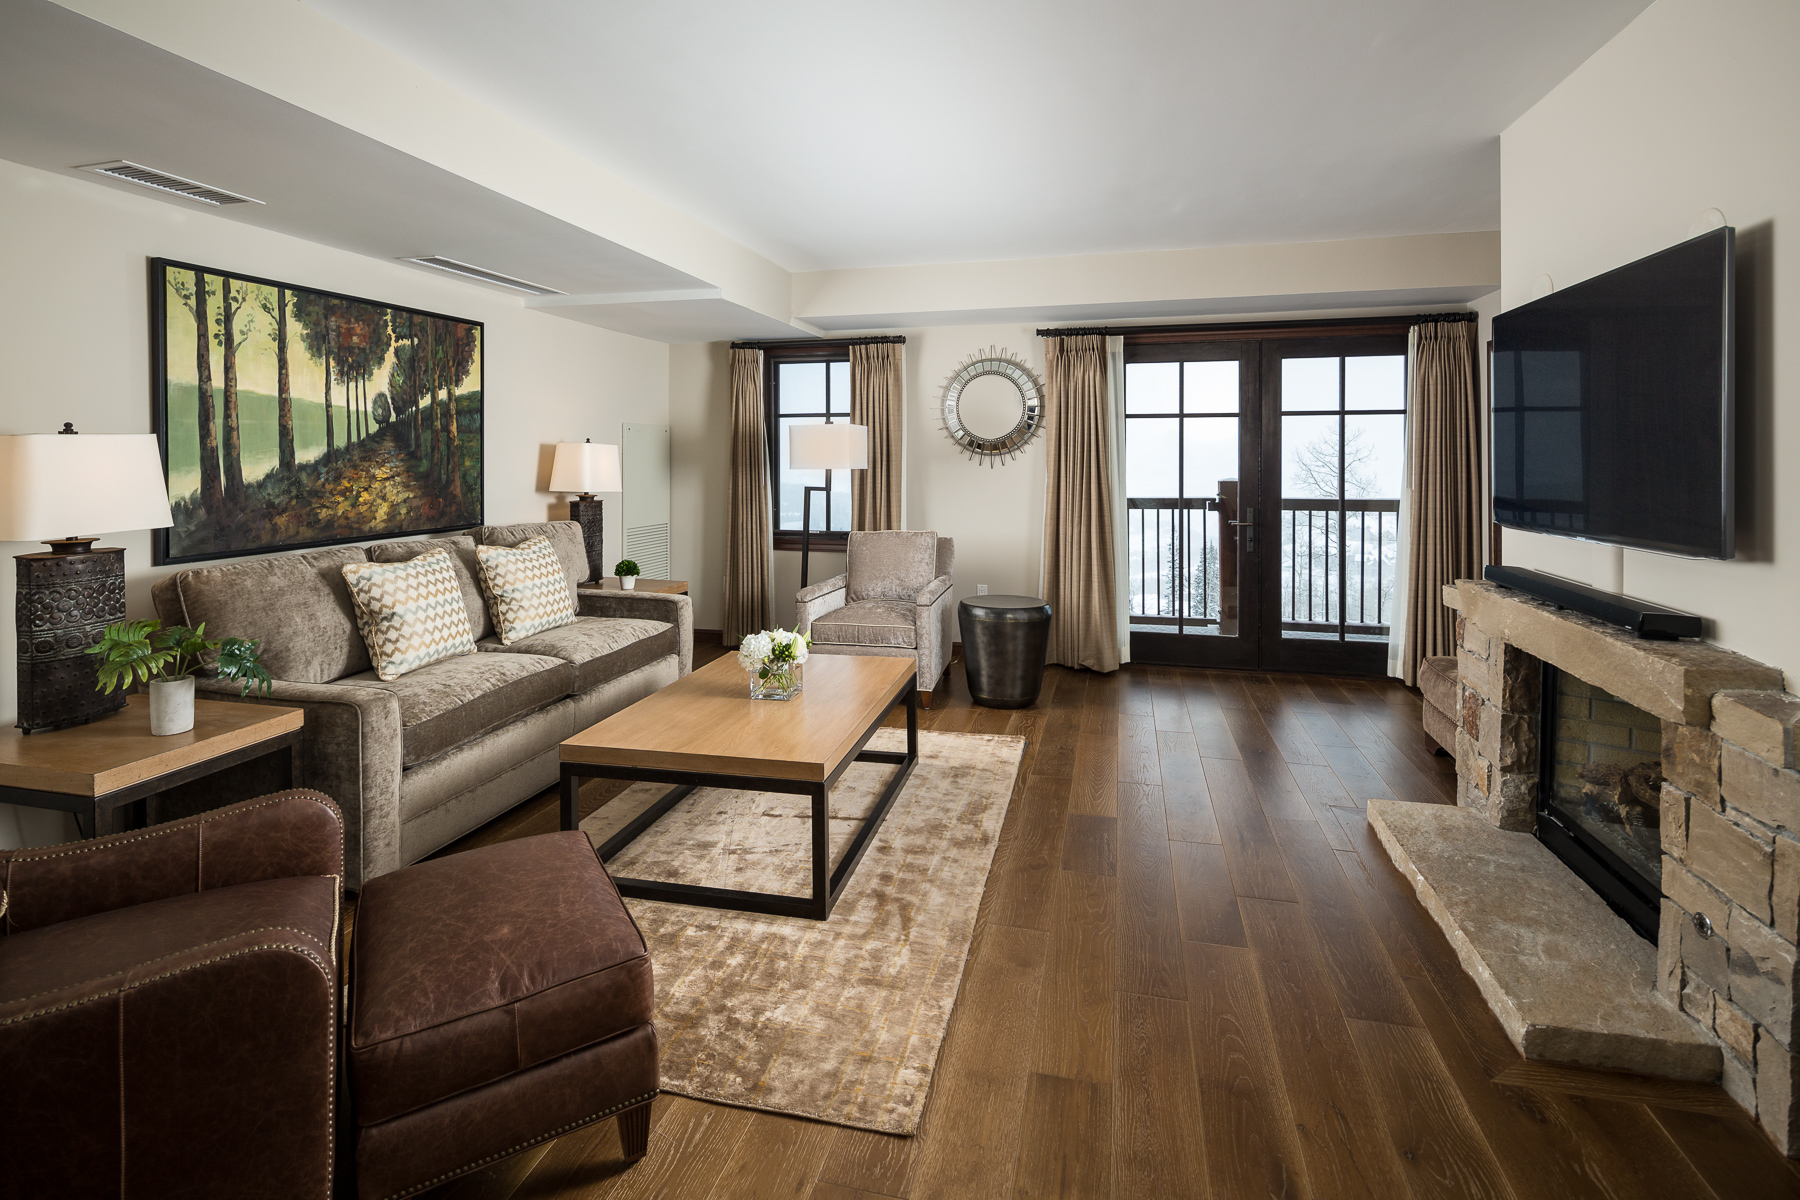 Condominium for Sale at Residence 639, Madeline Hotel & Residences 568 Mountain Village Boulevard, Residence 639 Telluride, Colorado, 81435 United States